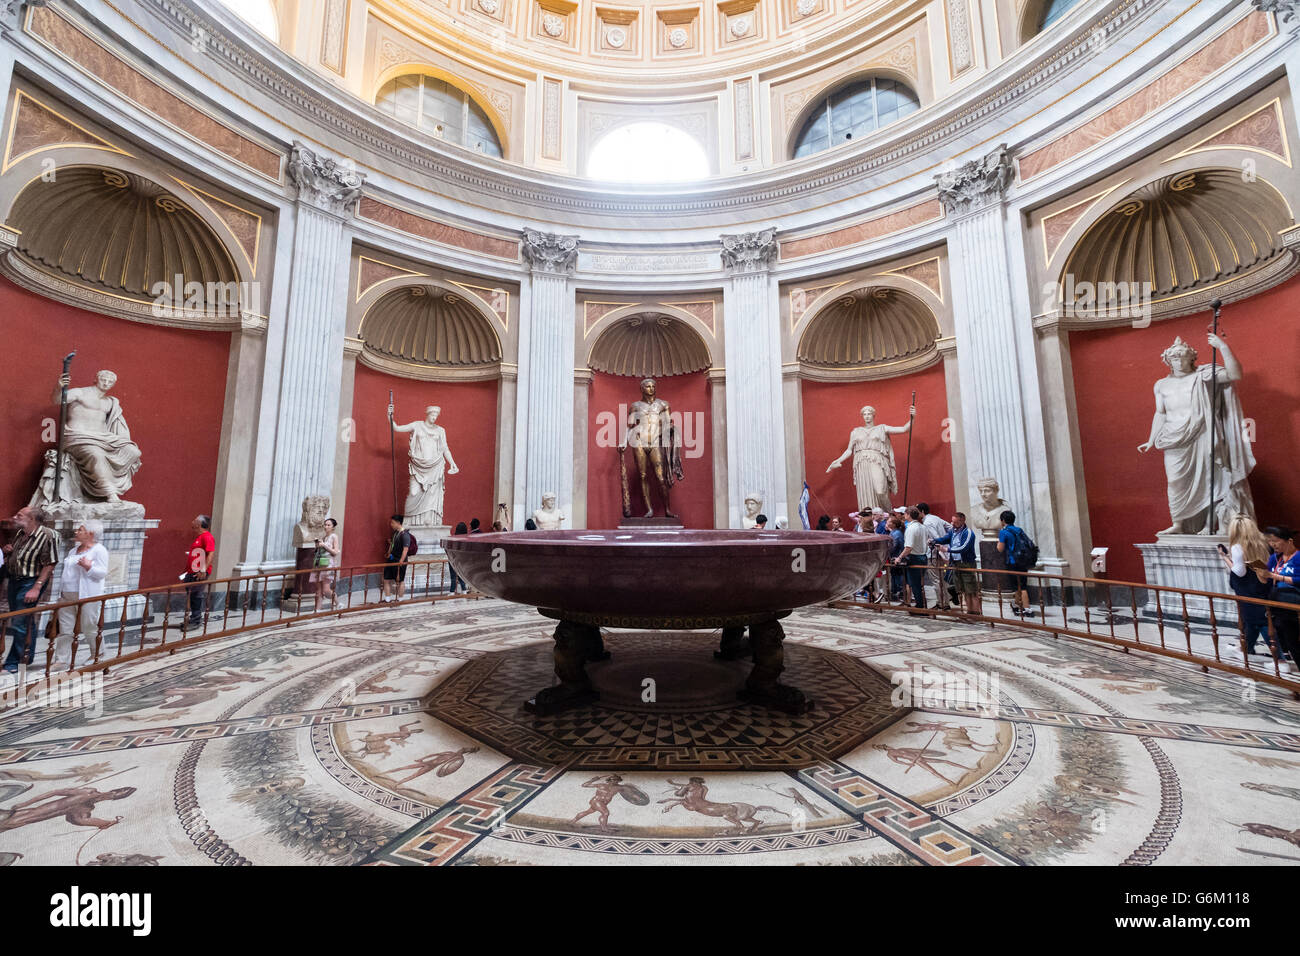 The Round room (Sala Rotonda) in the Vatican Museum in Rome, Italy - Stock Image